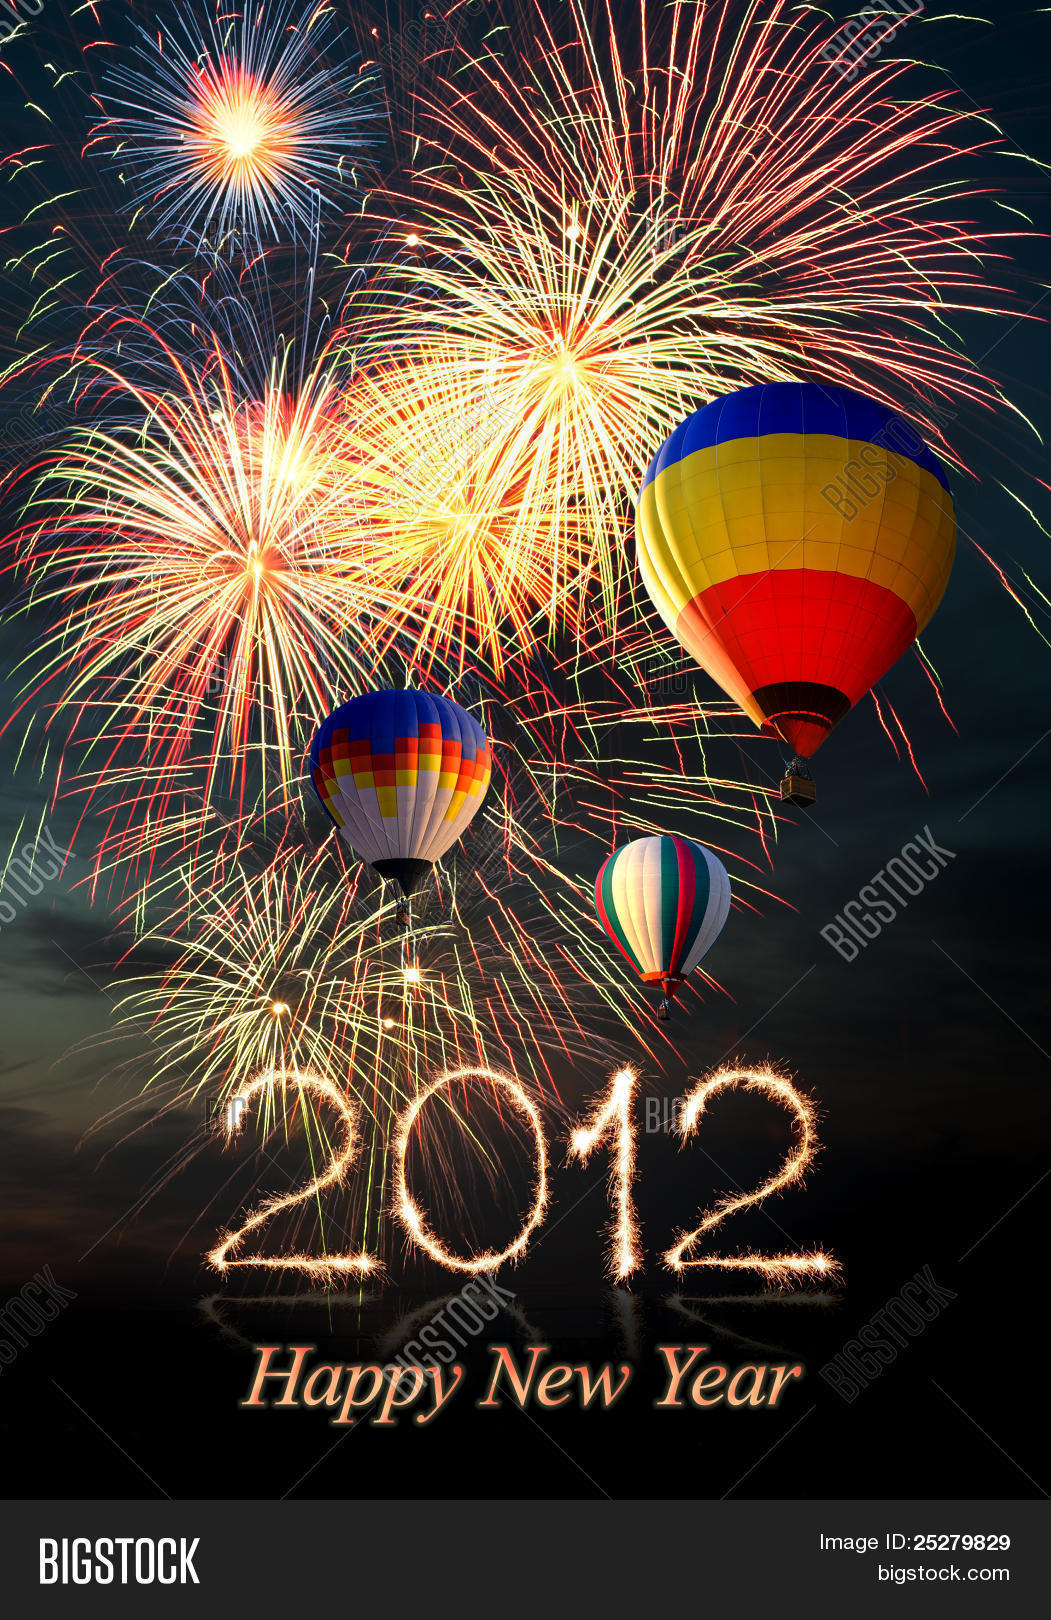 New Year 2012 Fireworks And Hot Air-balloon